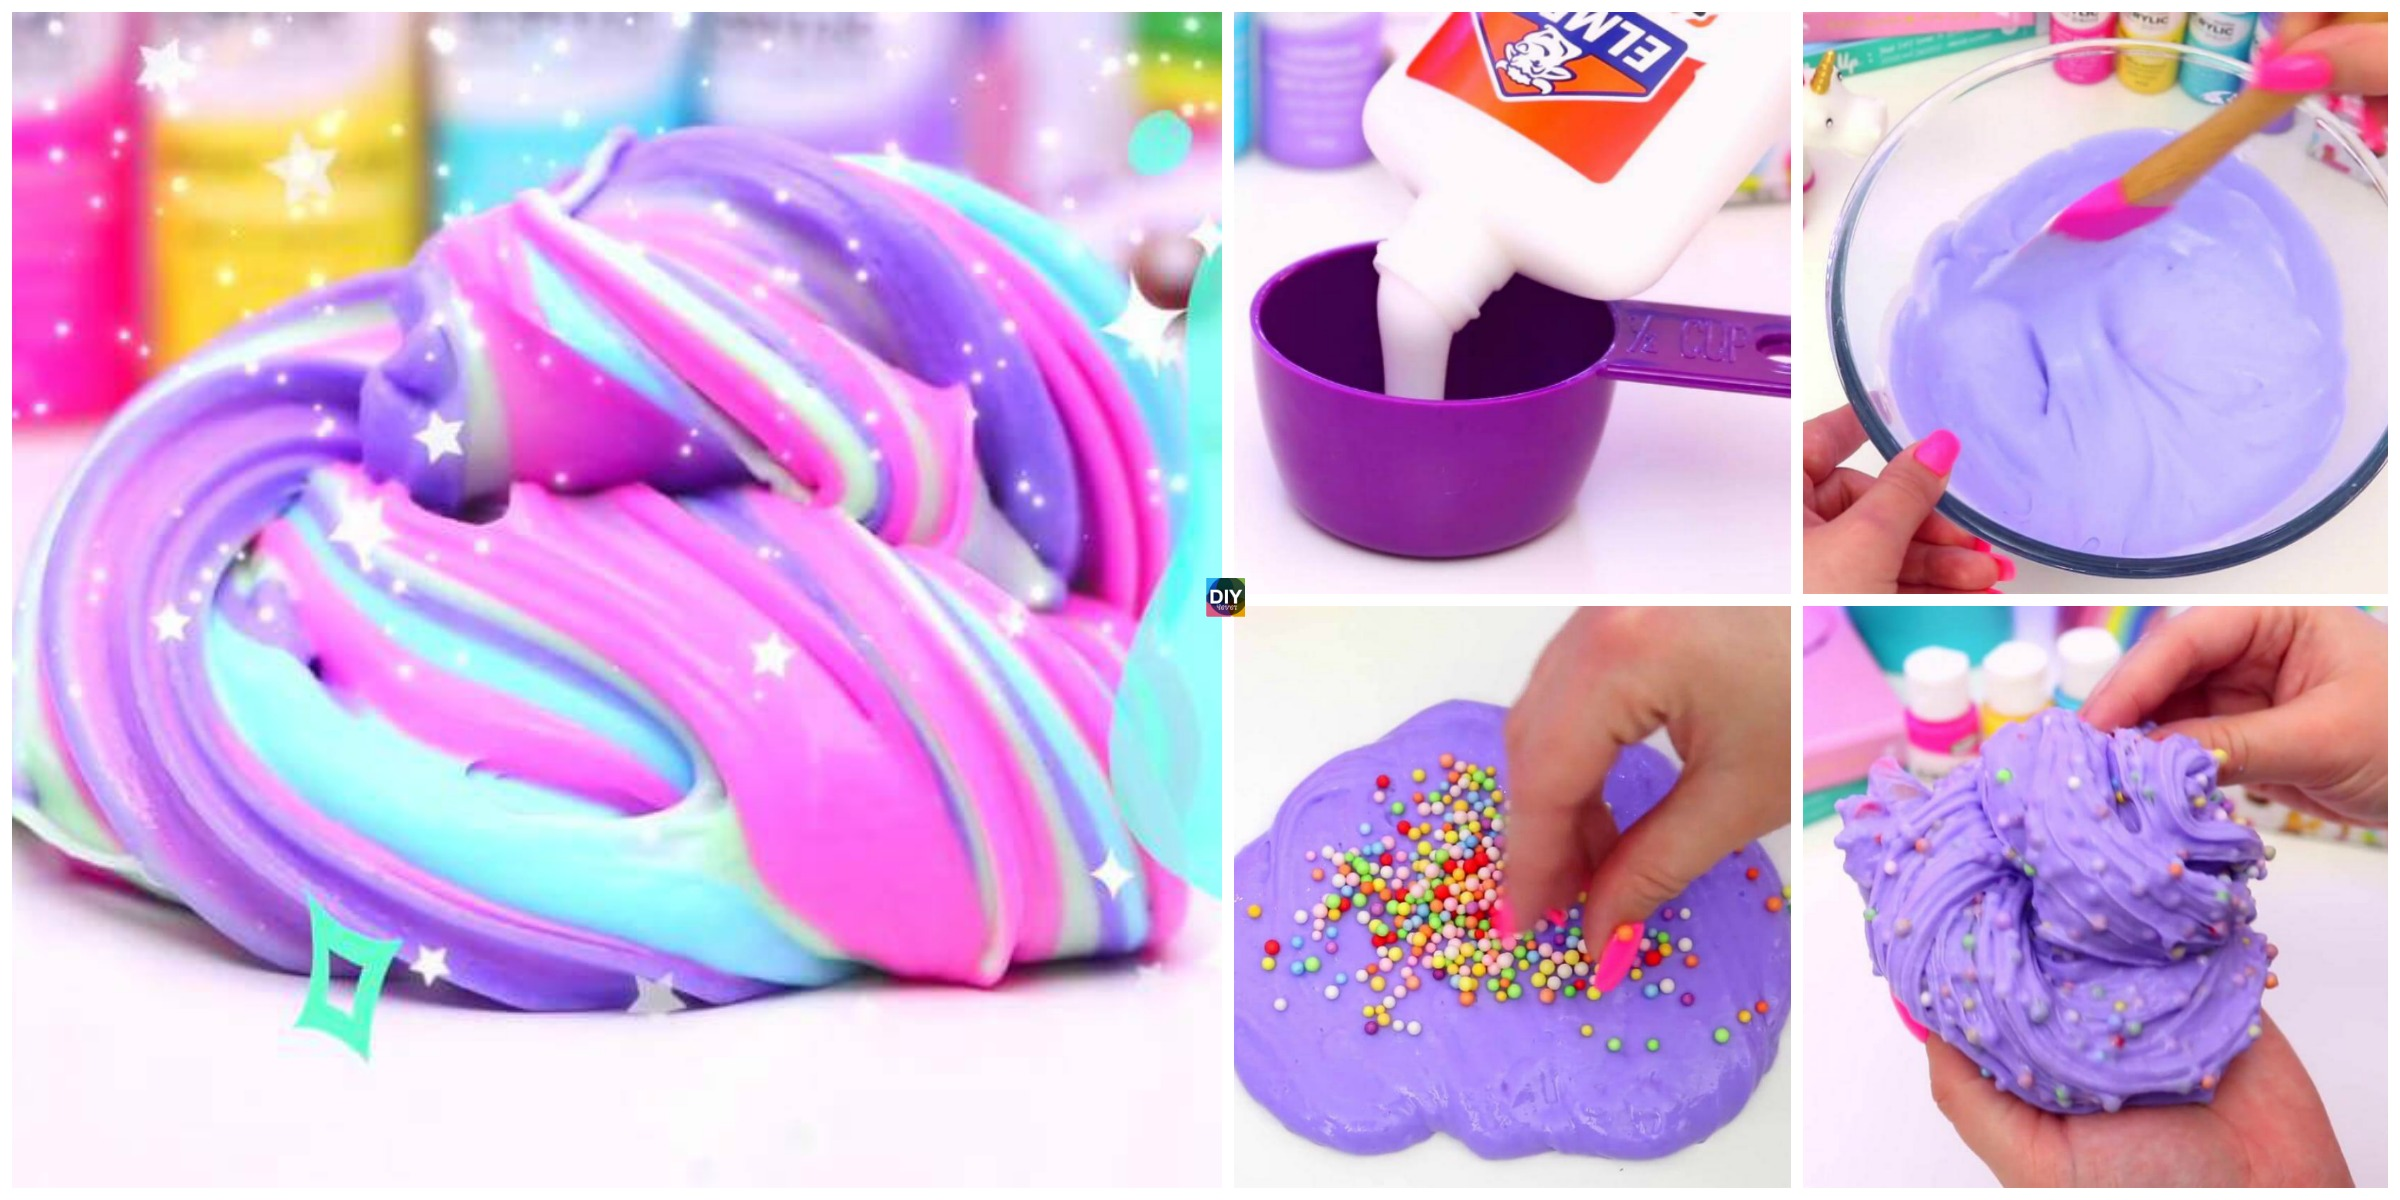 DIY Fluffy Slime Step by Step Tutorial